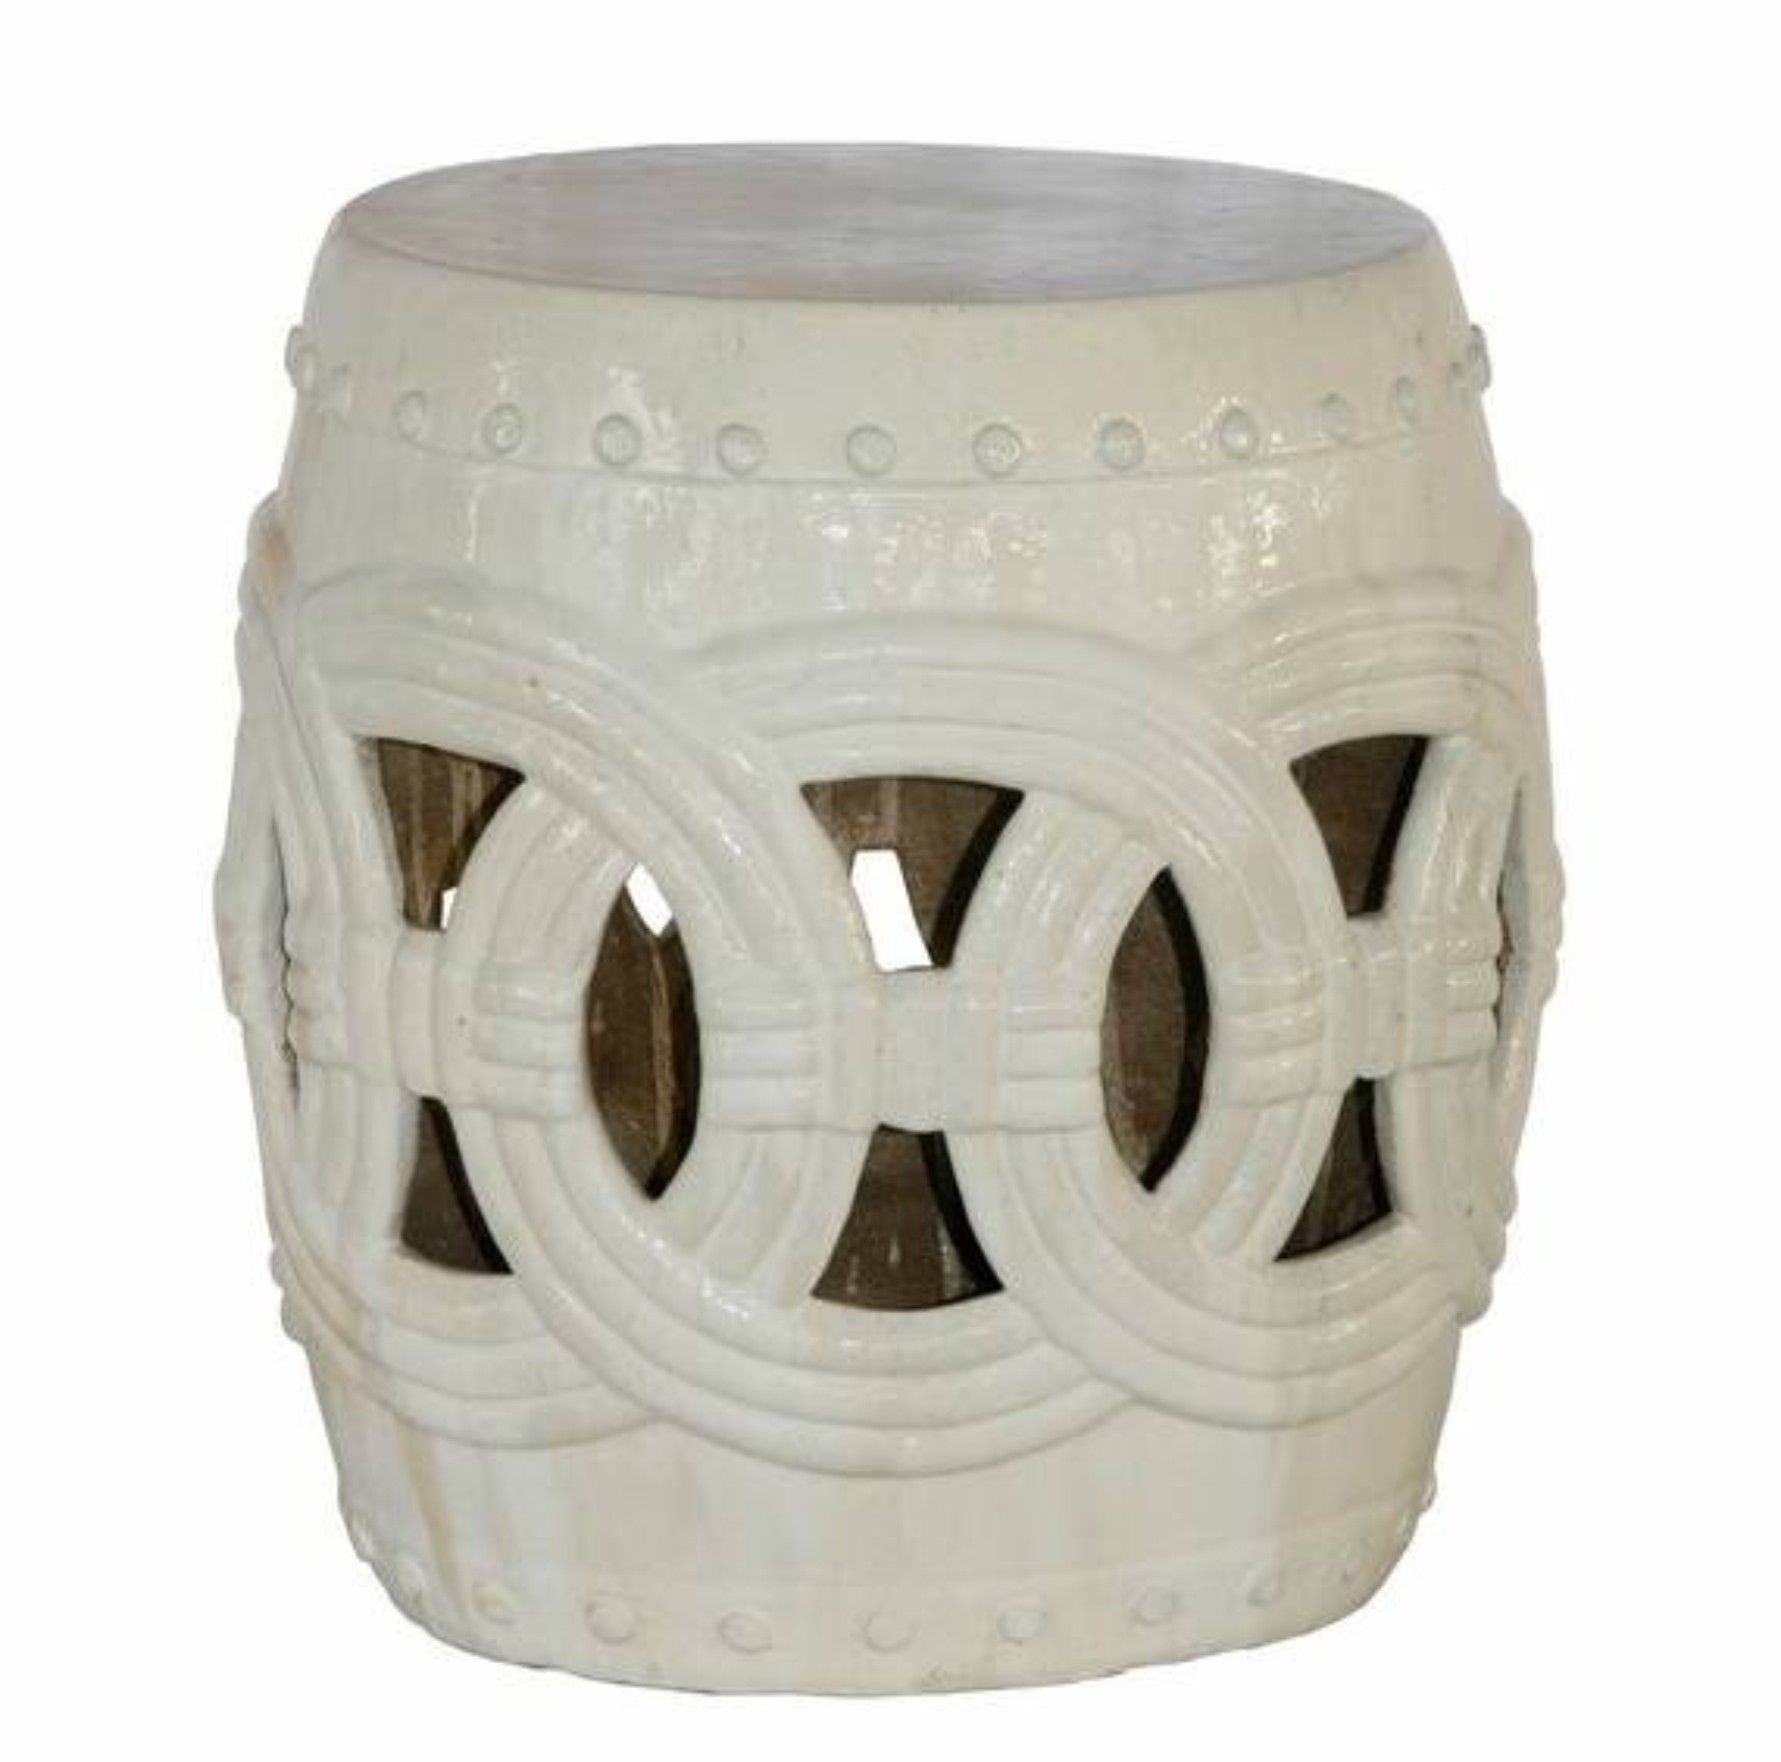 Rope Ceramic Garden Stool